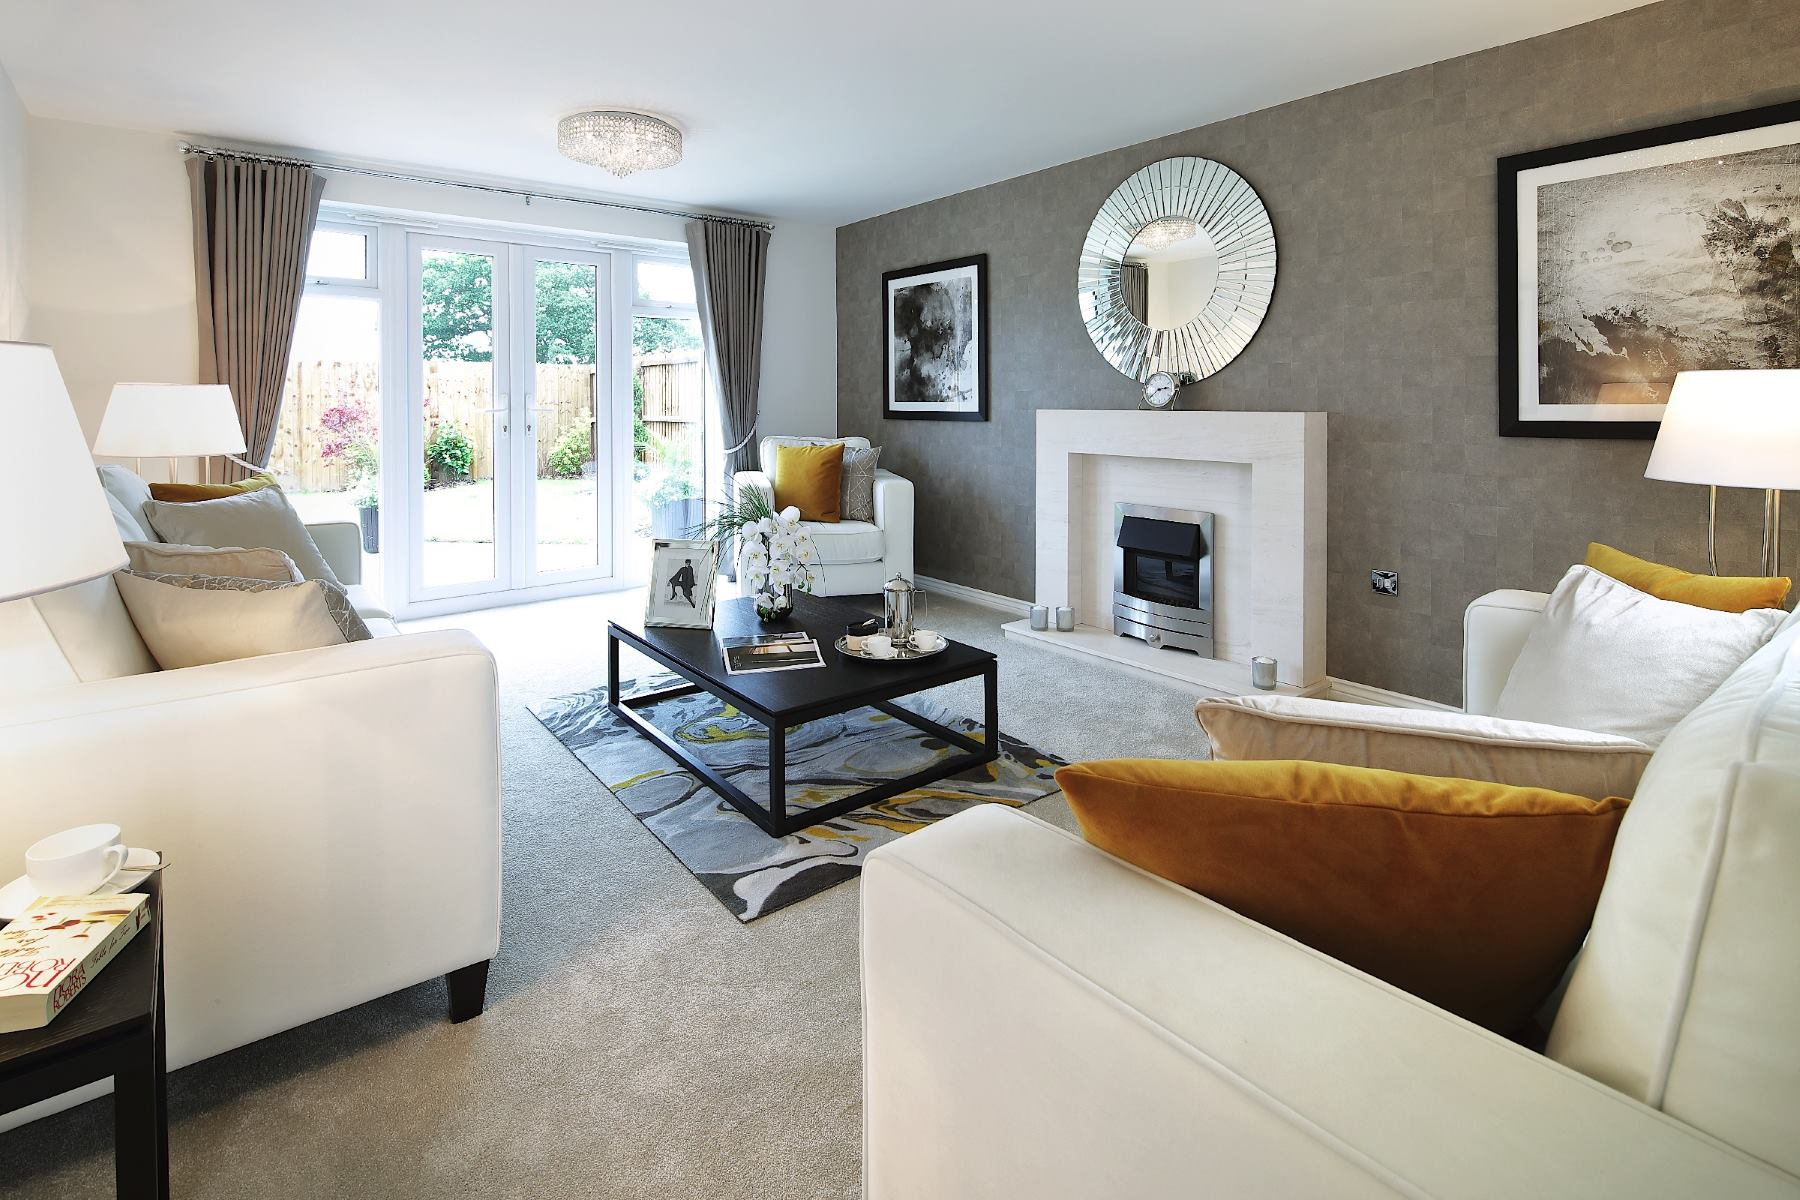 living room show homes feng shui apartment kingsbourne new in nantwich taylor wimpey